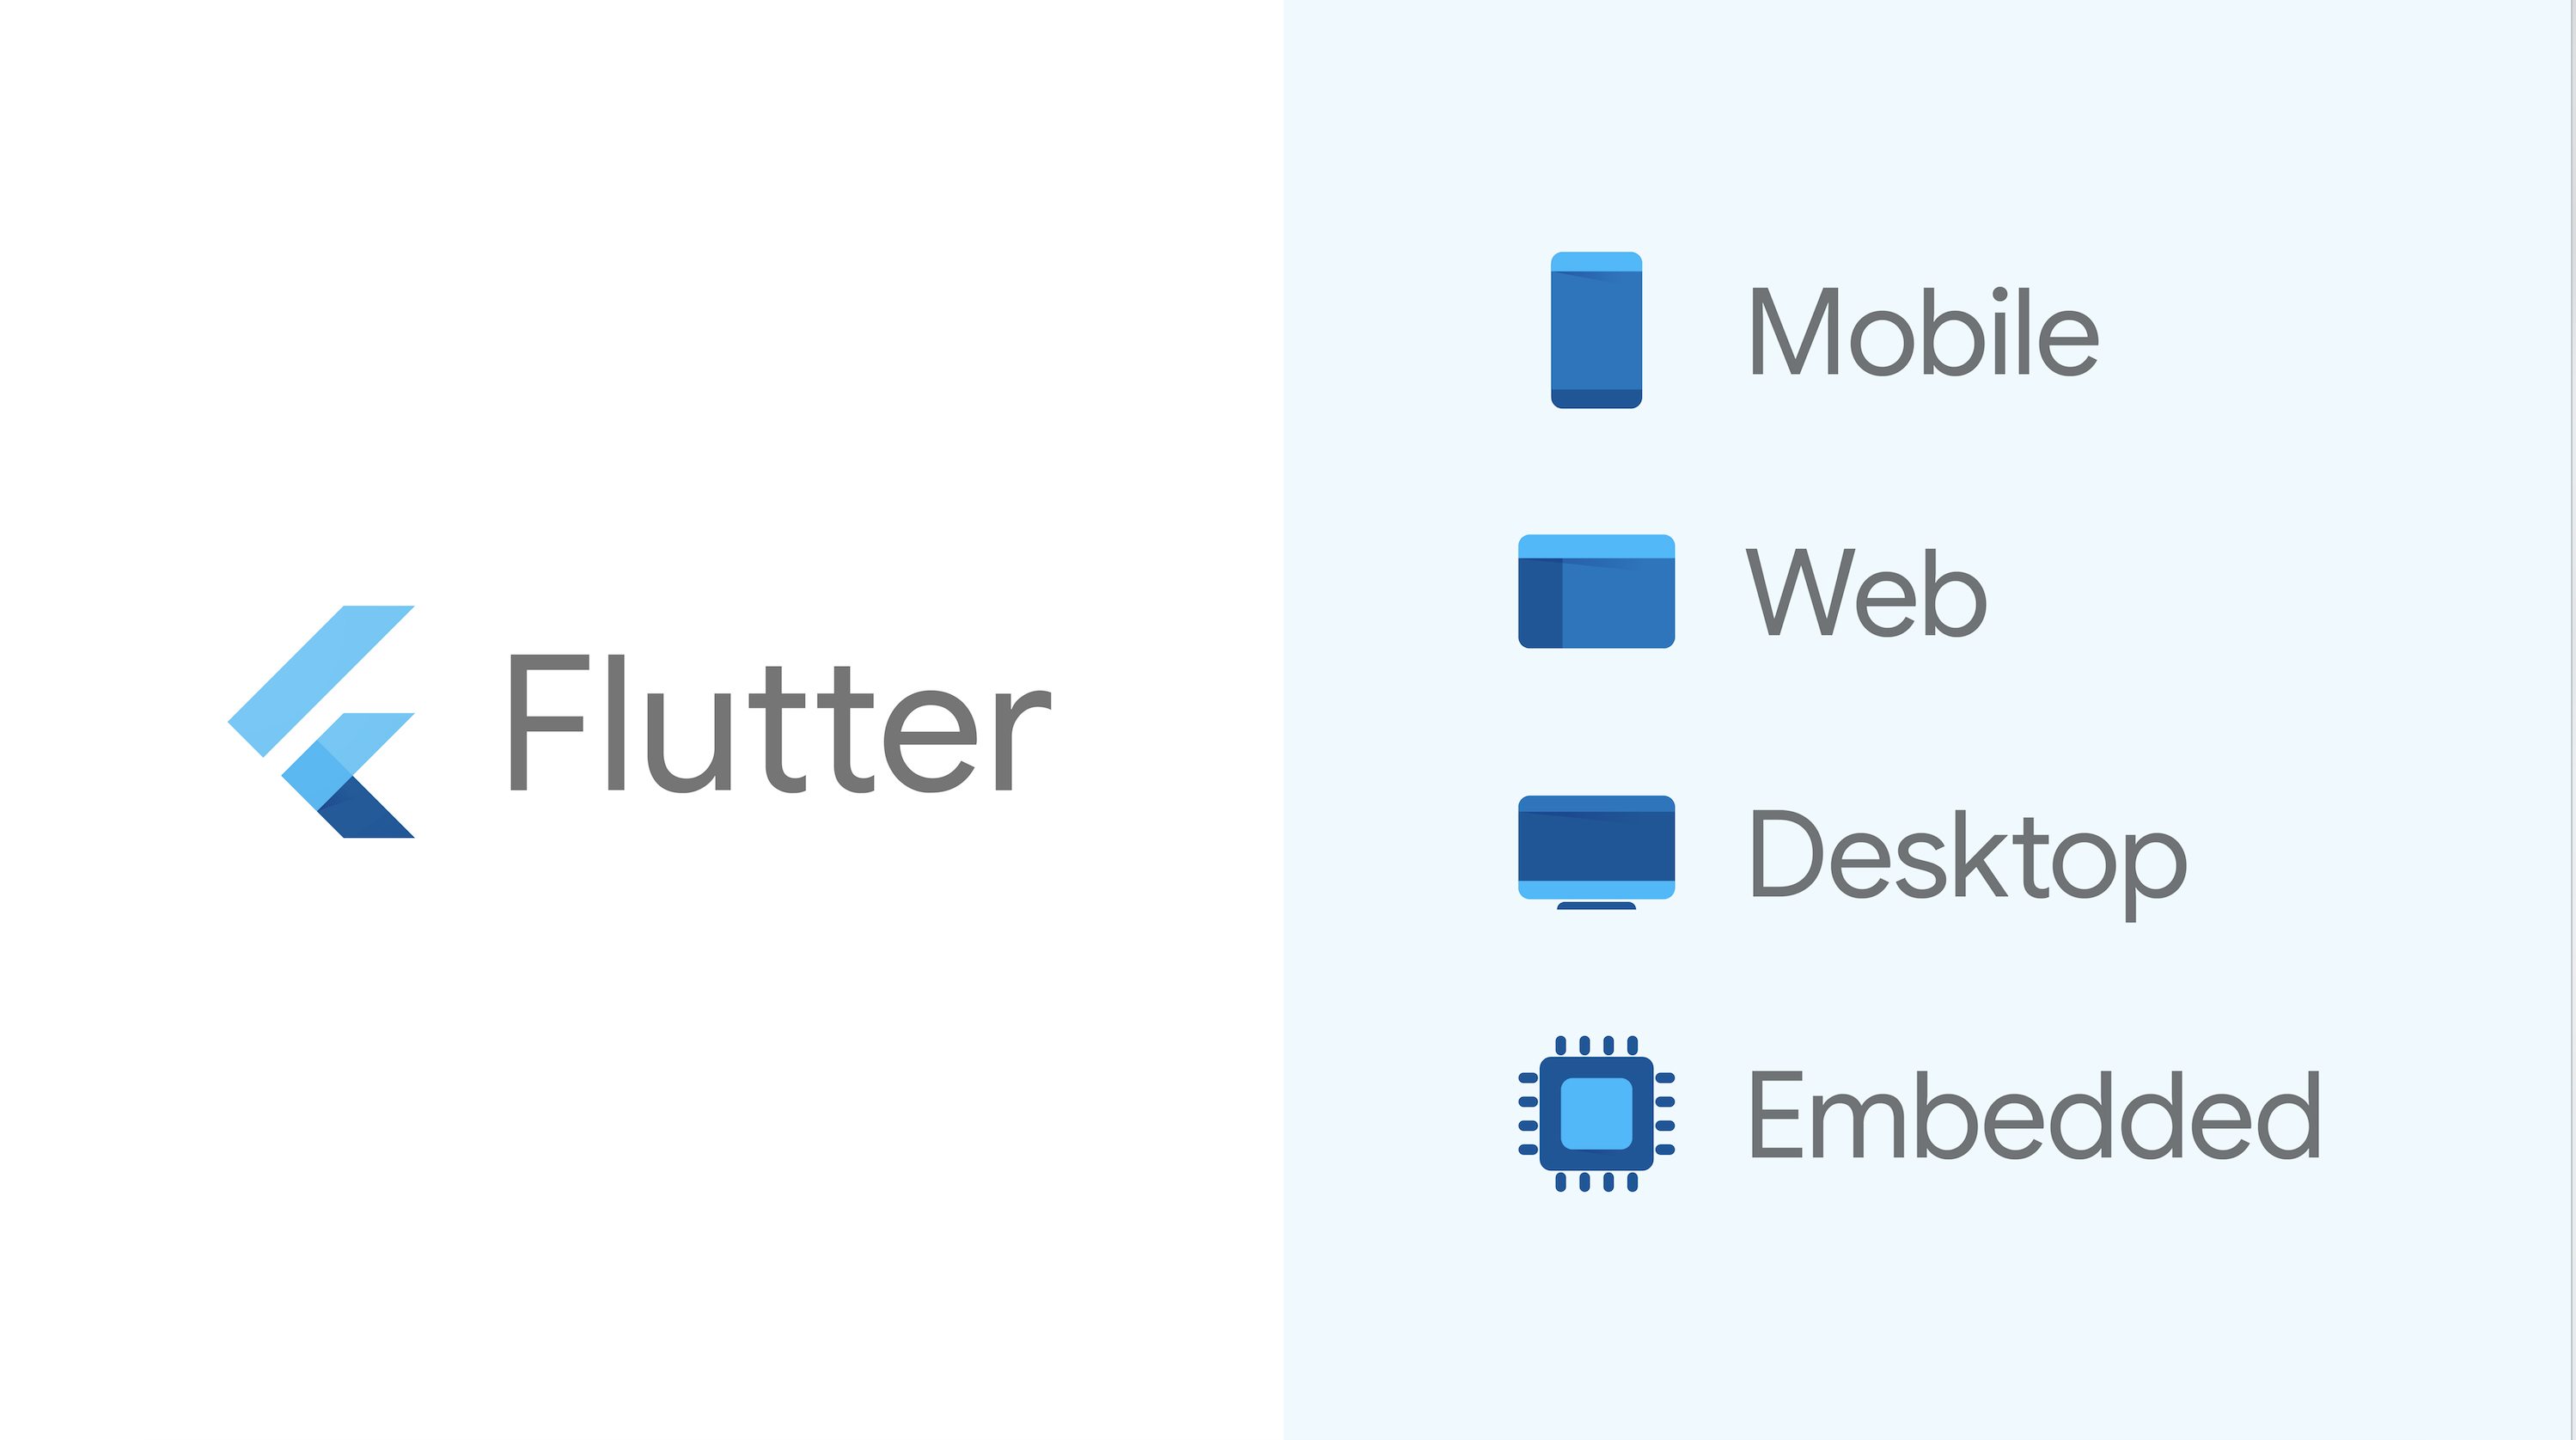 Google's Flutter framework spreads its wings and goes multi-platform